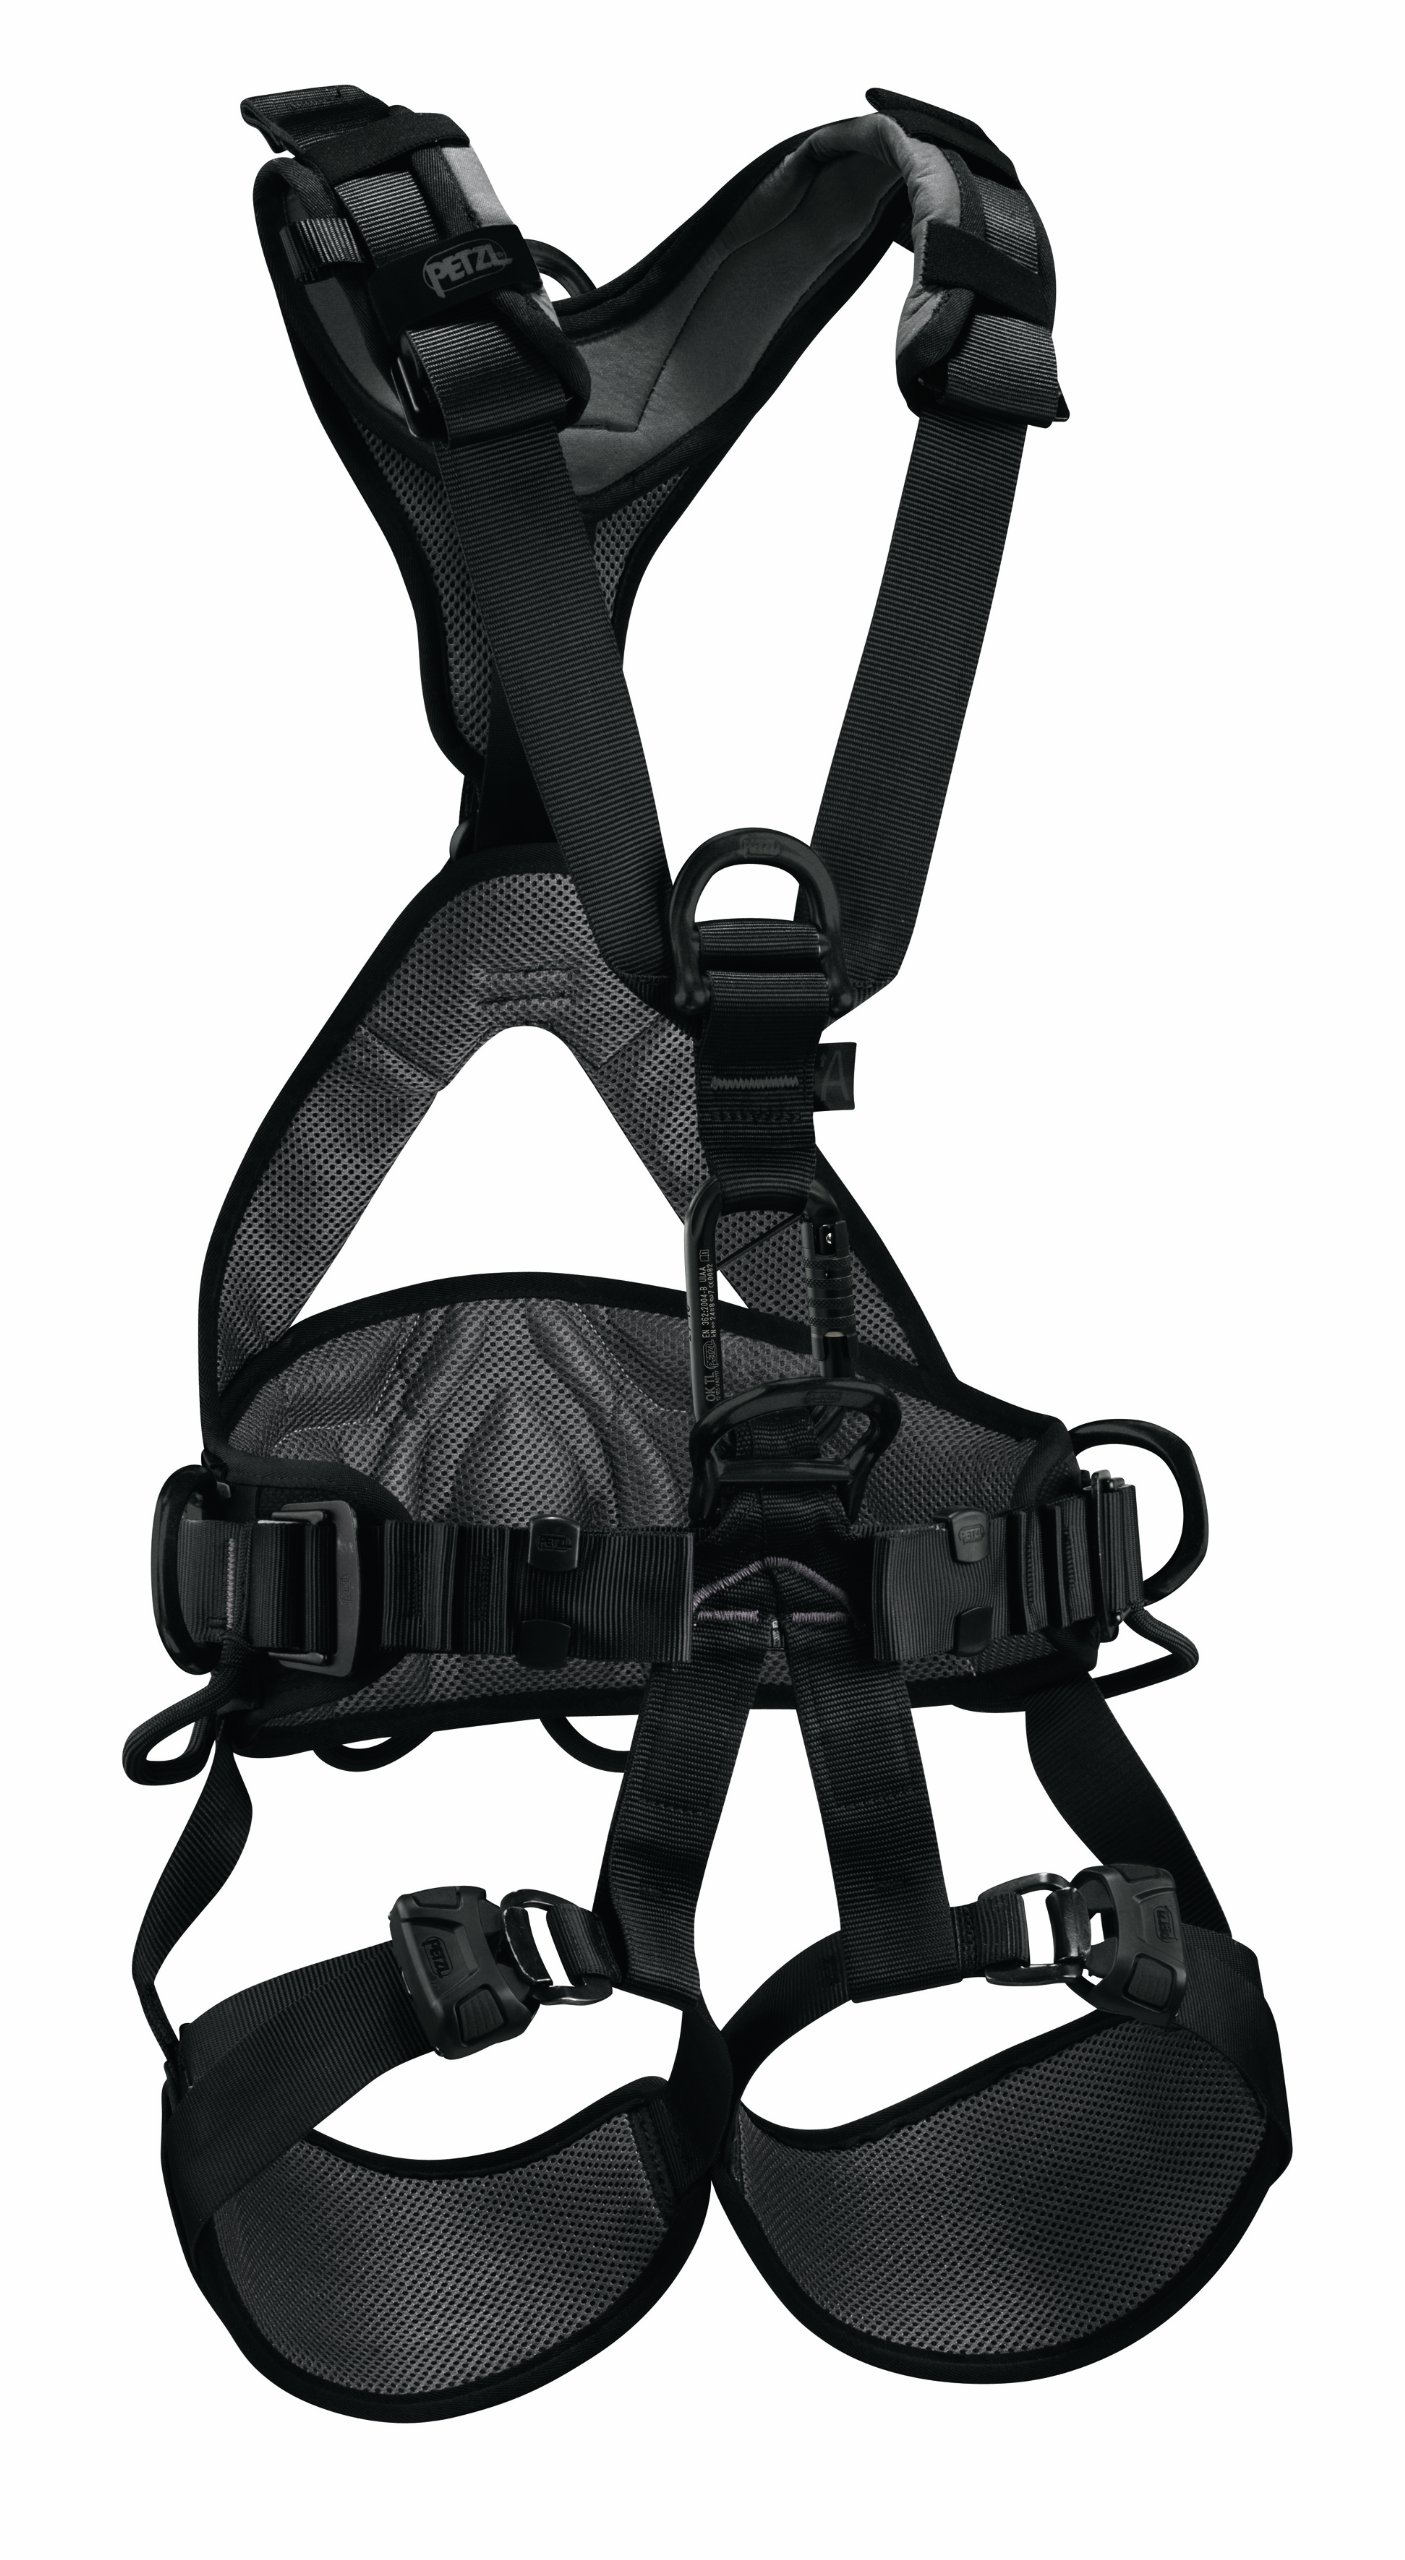 Petzl - AVAO BOD FAST International Version, Comfortable Harness for Fall Arrest, Size 0, Black